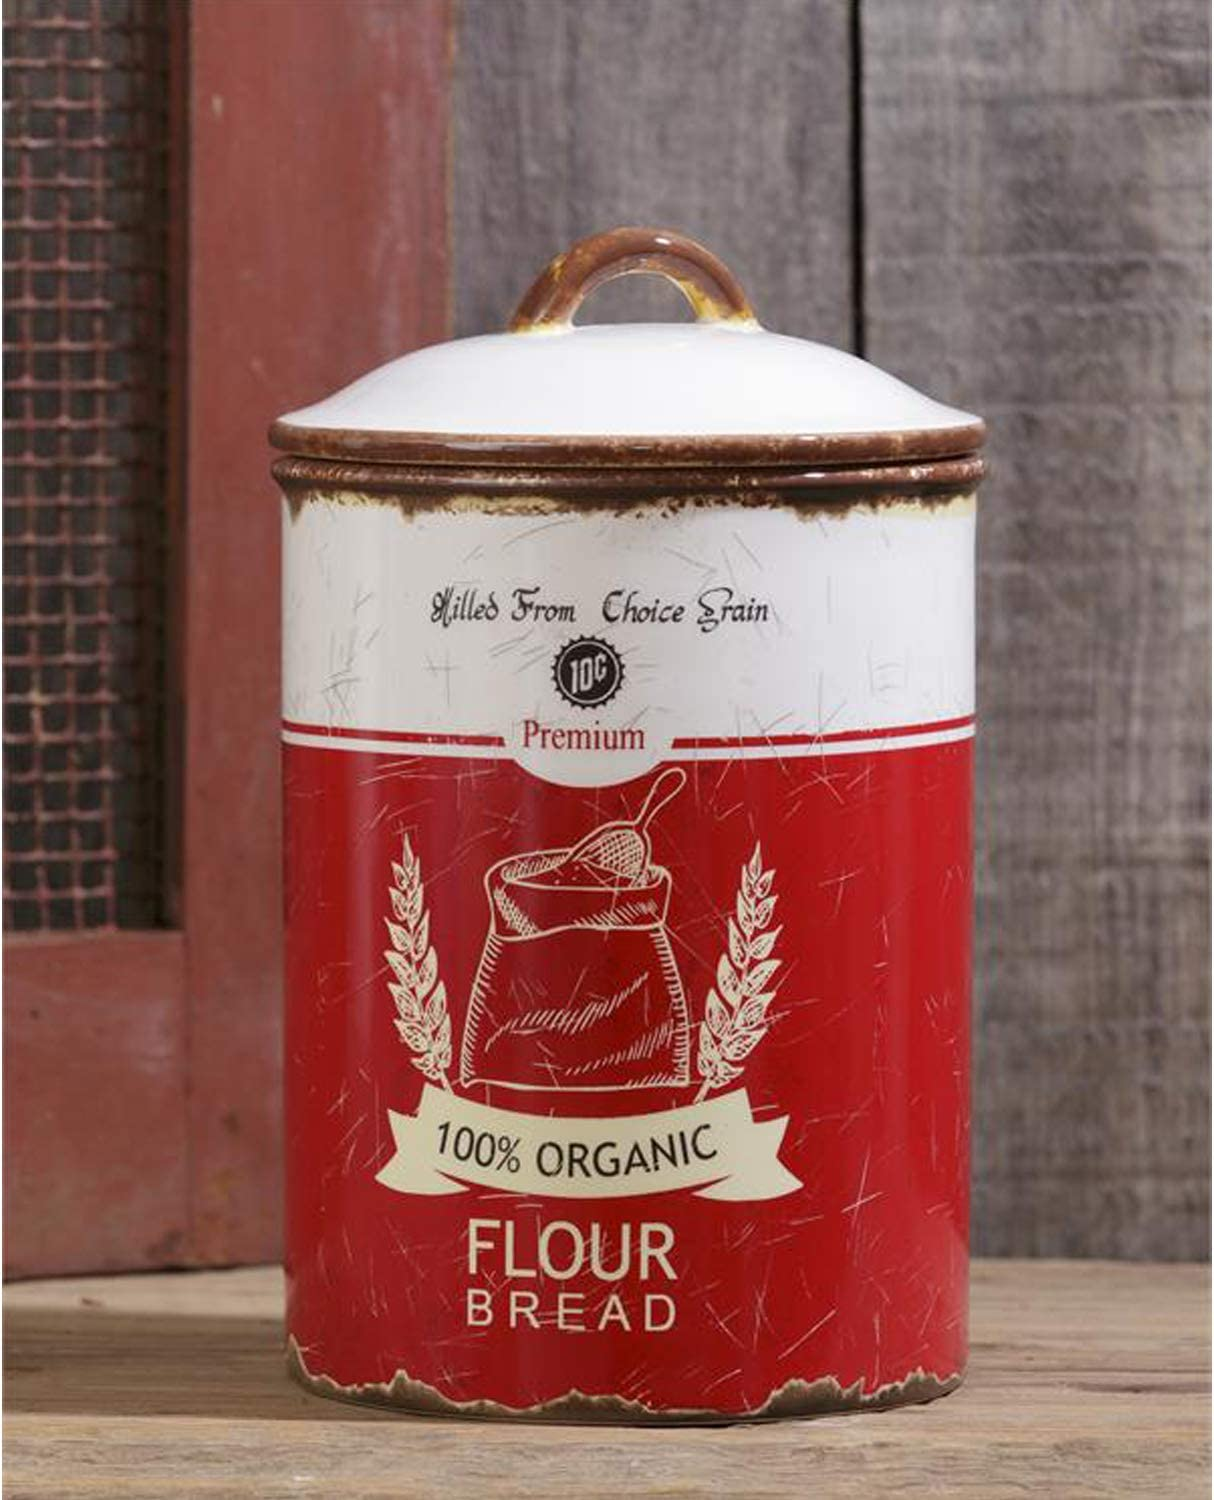 Vintage Rustic Decorative Ceramic Flour Storage Canister with Lid – Retro Farmhouse Cookie Jar Container Kitchen Decor